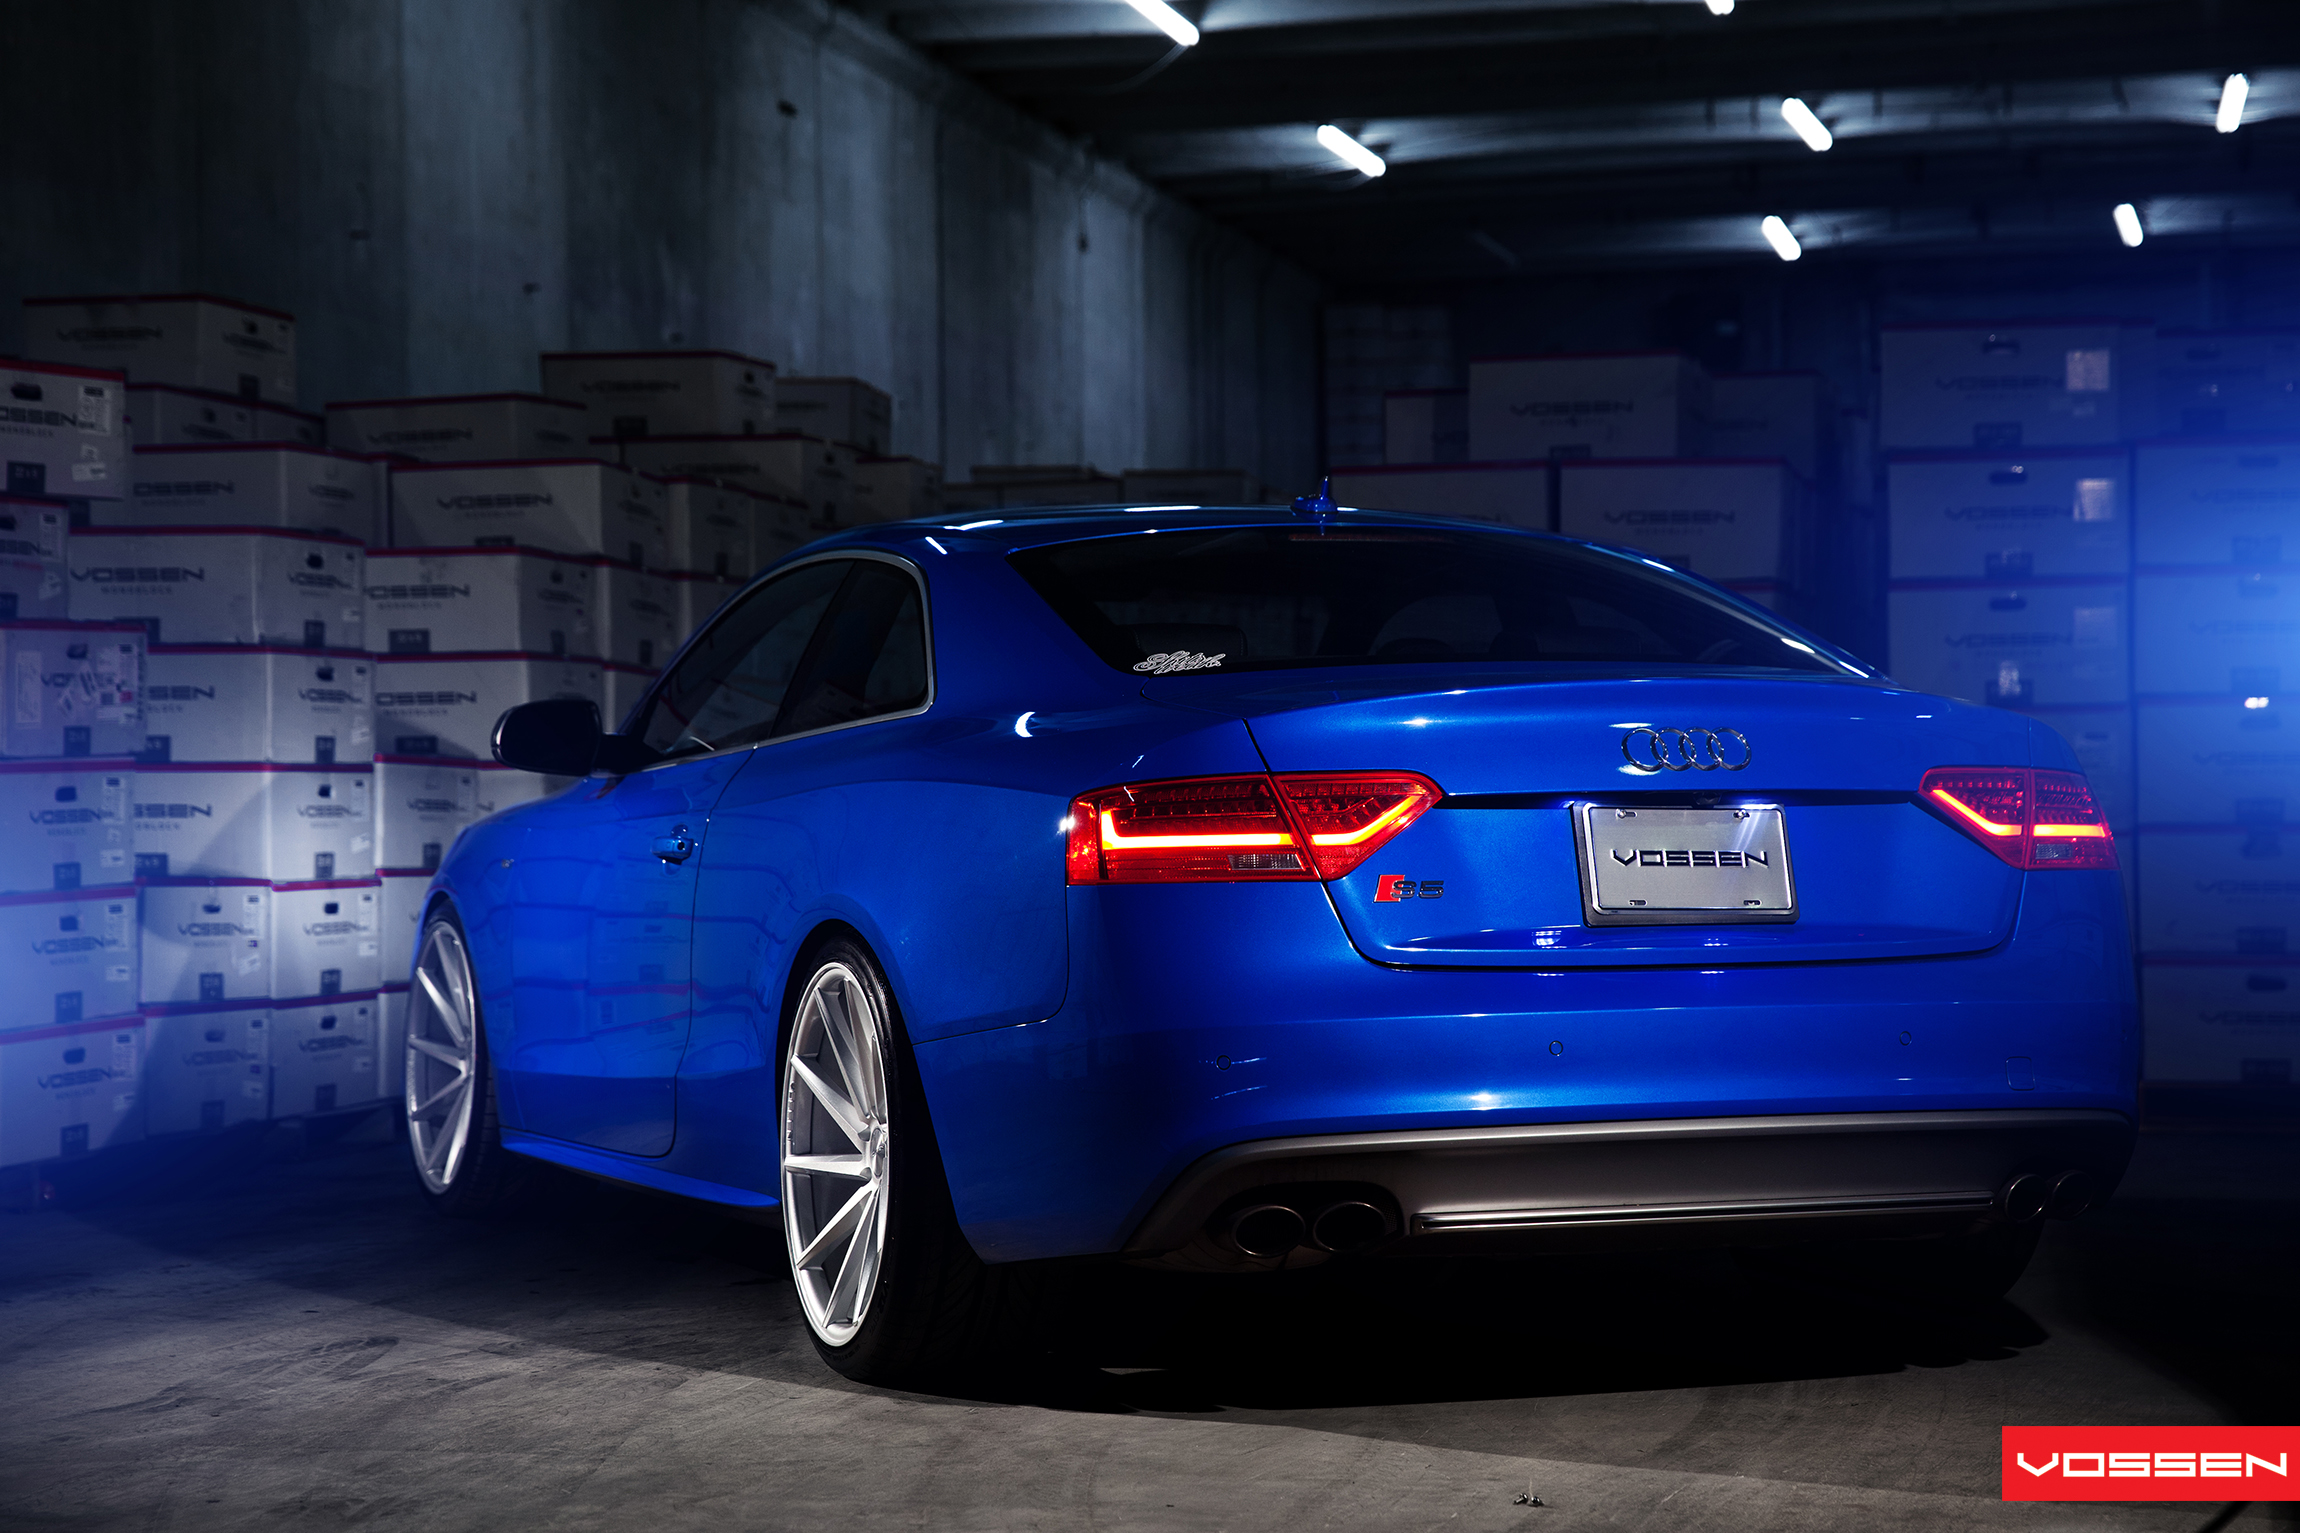 AUDI S5 On VOSSEN CVT Photo Gallery VOSSEN JAPAN